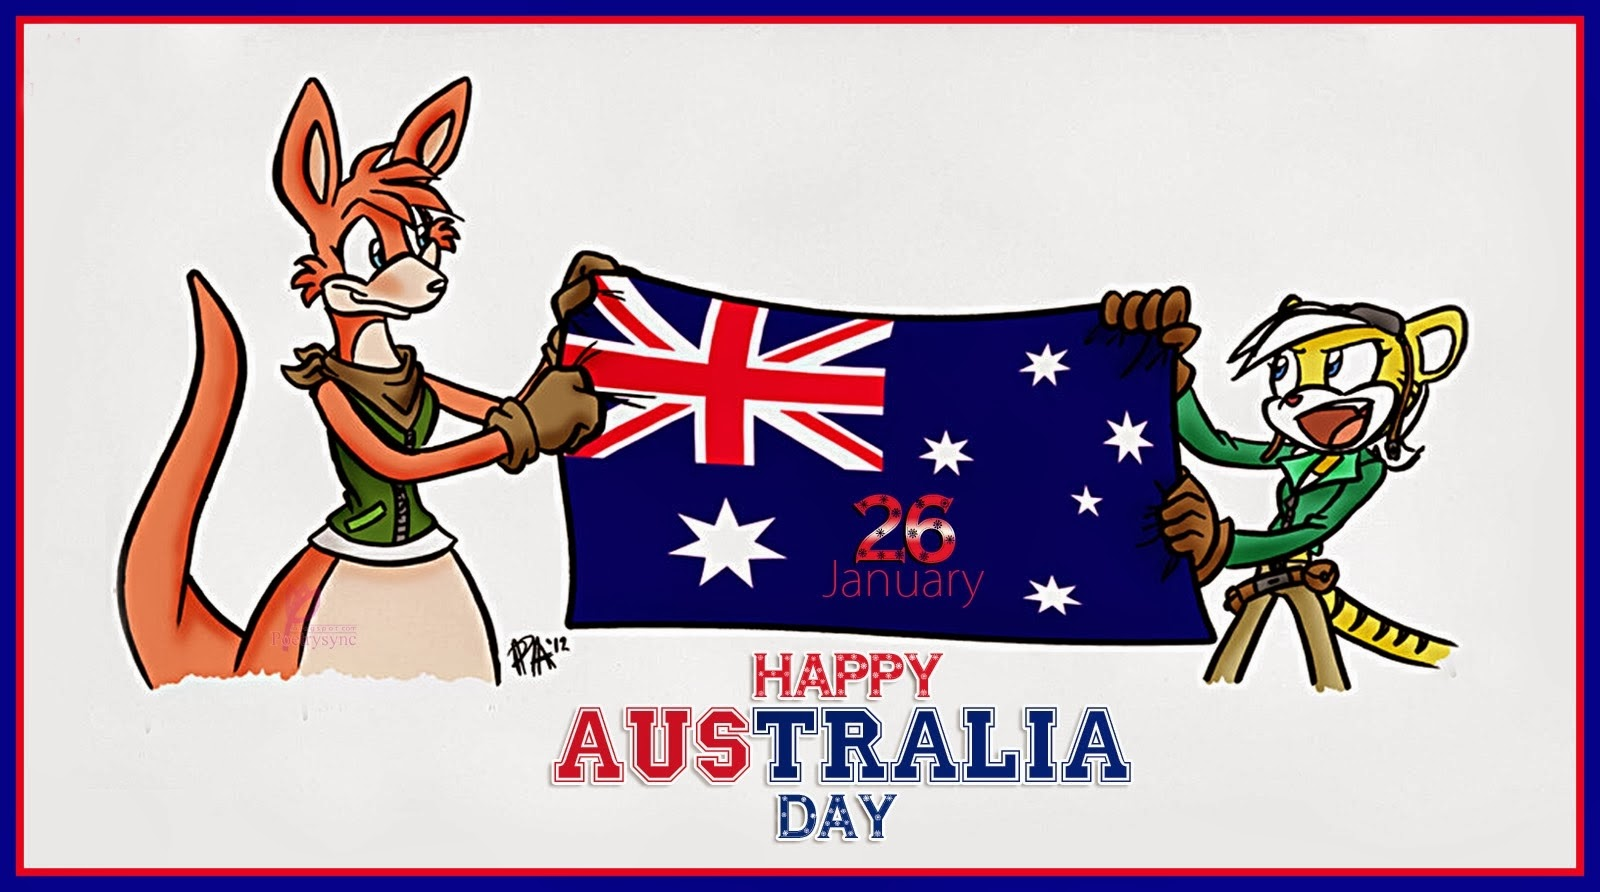 Happy australia day hd wallpapers for wishes 26 january with happy australia day hd wallpapers for wishes 26 january with greeting card quotes m4hsunfo